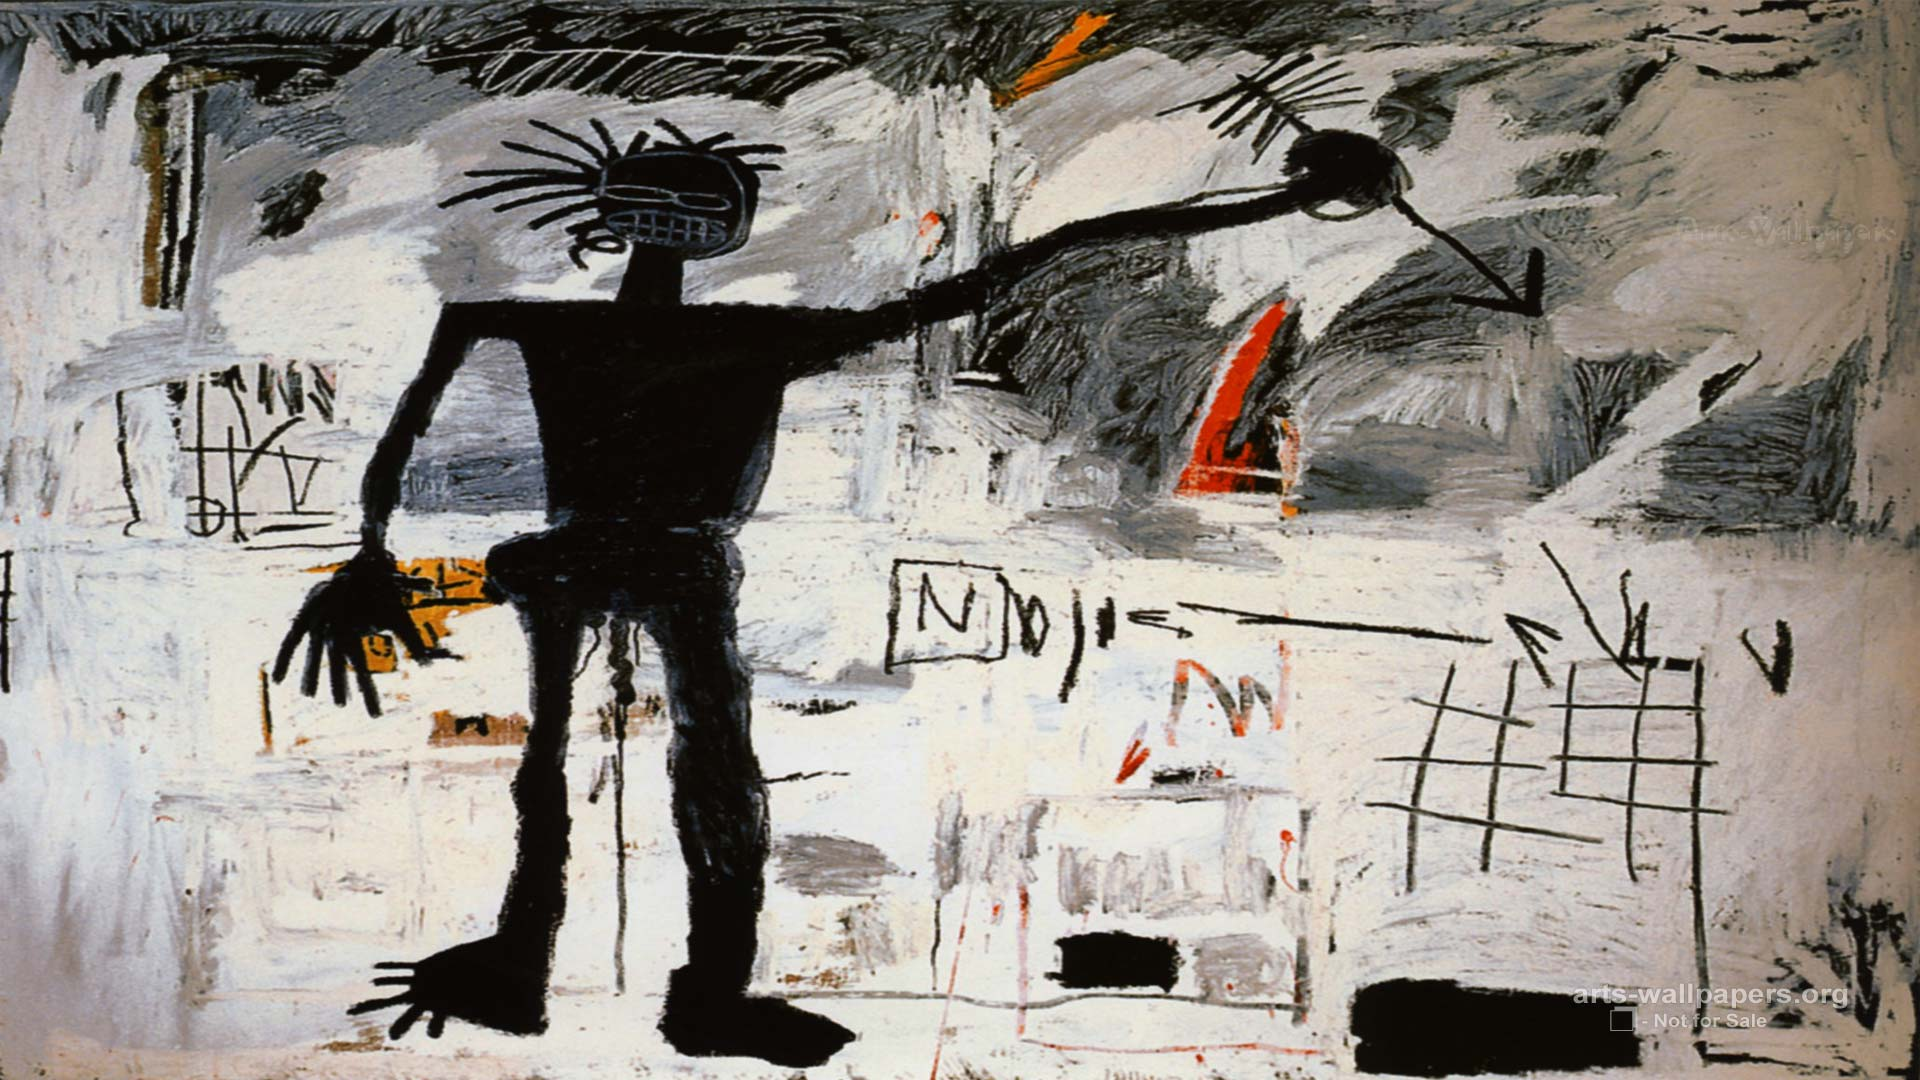 jean-michel basquiat artwork | Jean Michel Basquiat Wallpaper 01 ...